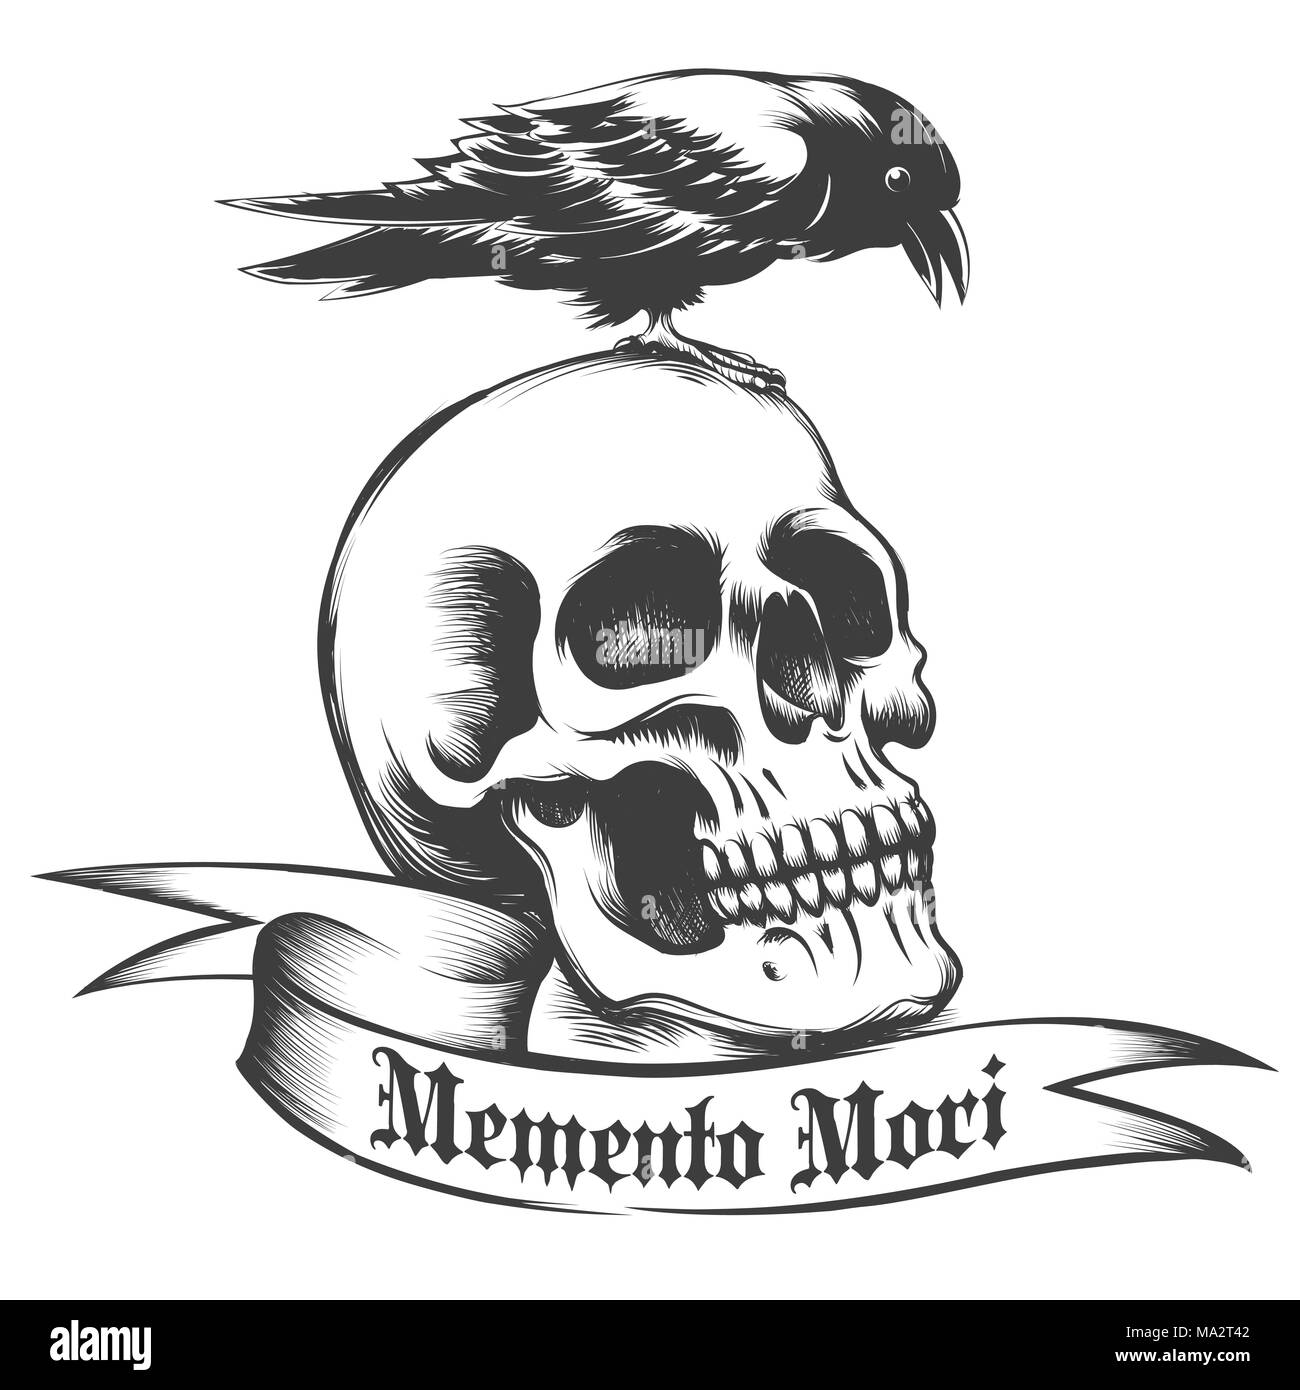 Hand Drawn Crow Sitting On Human Skull And Ribbon With Latin Wording